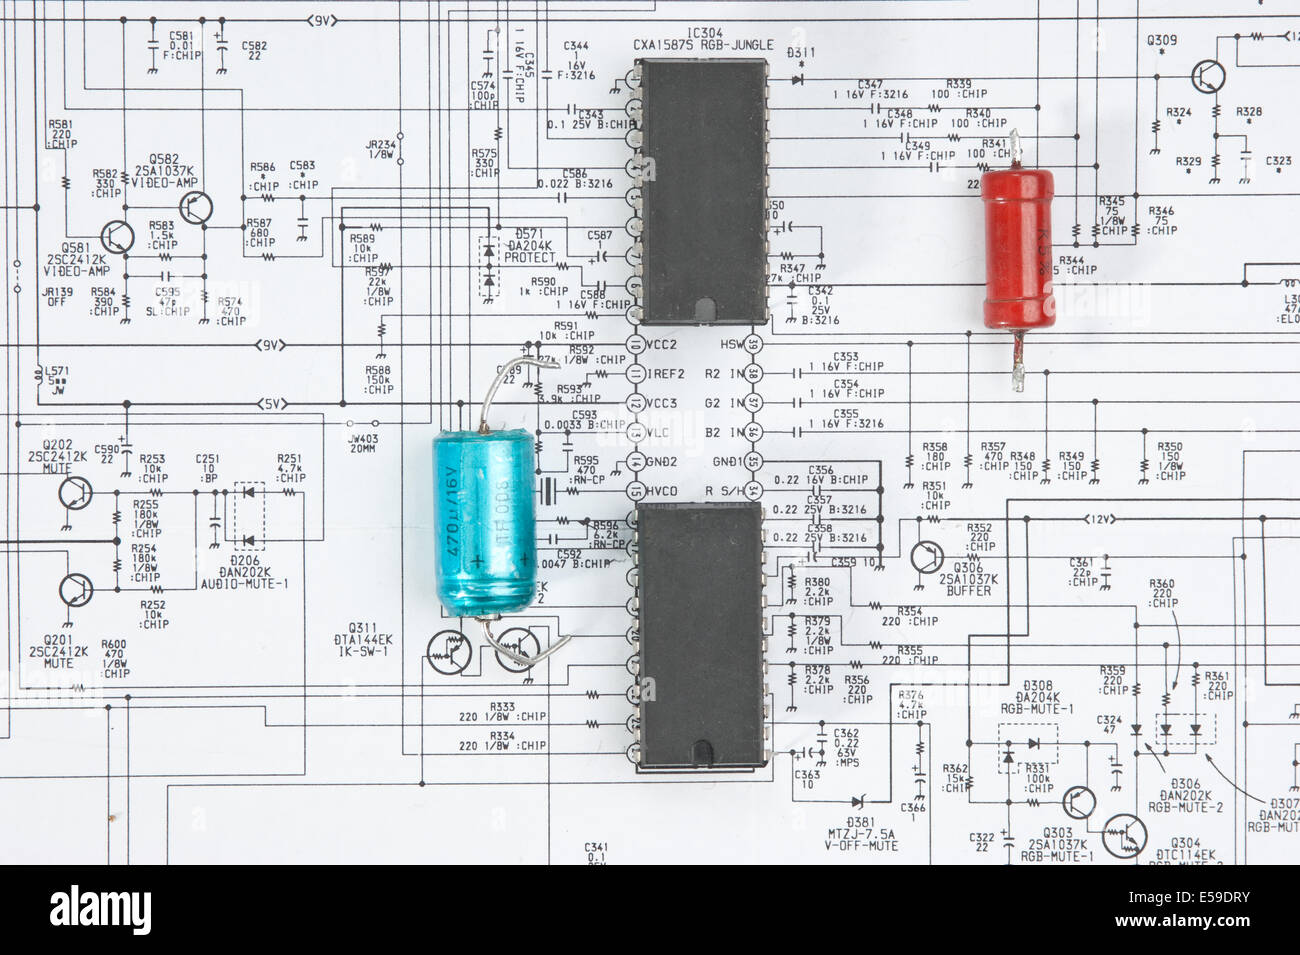 Wiring Diagram Stock Photos Images Alamy 100 Circuit Silicon Chip On The Image